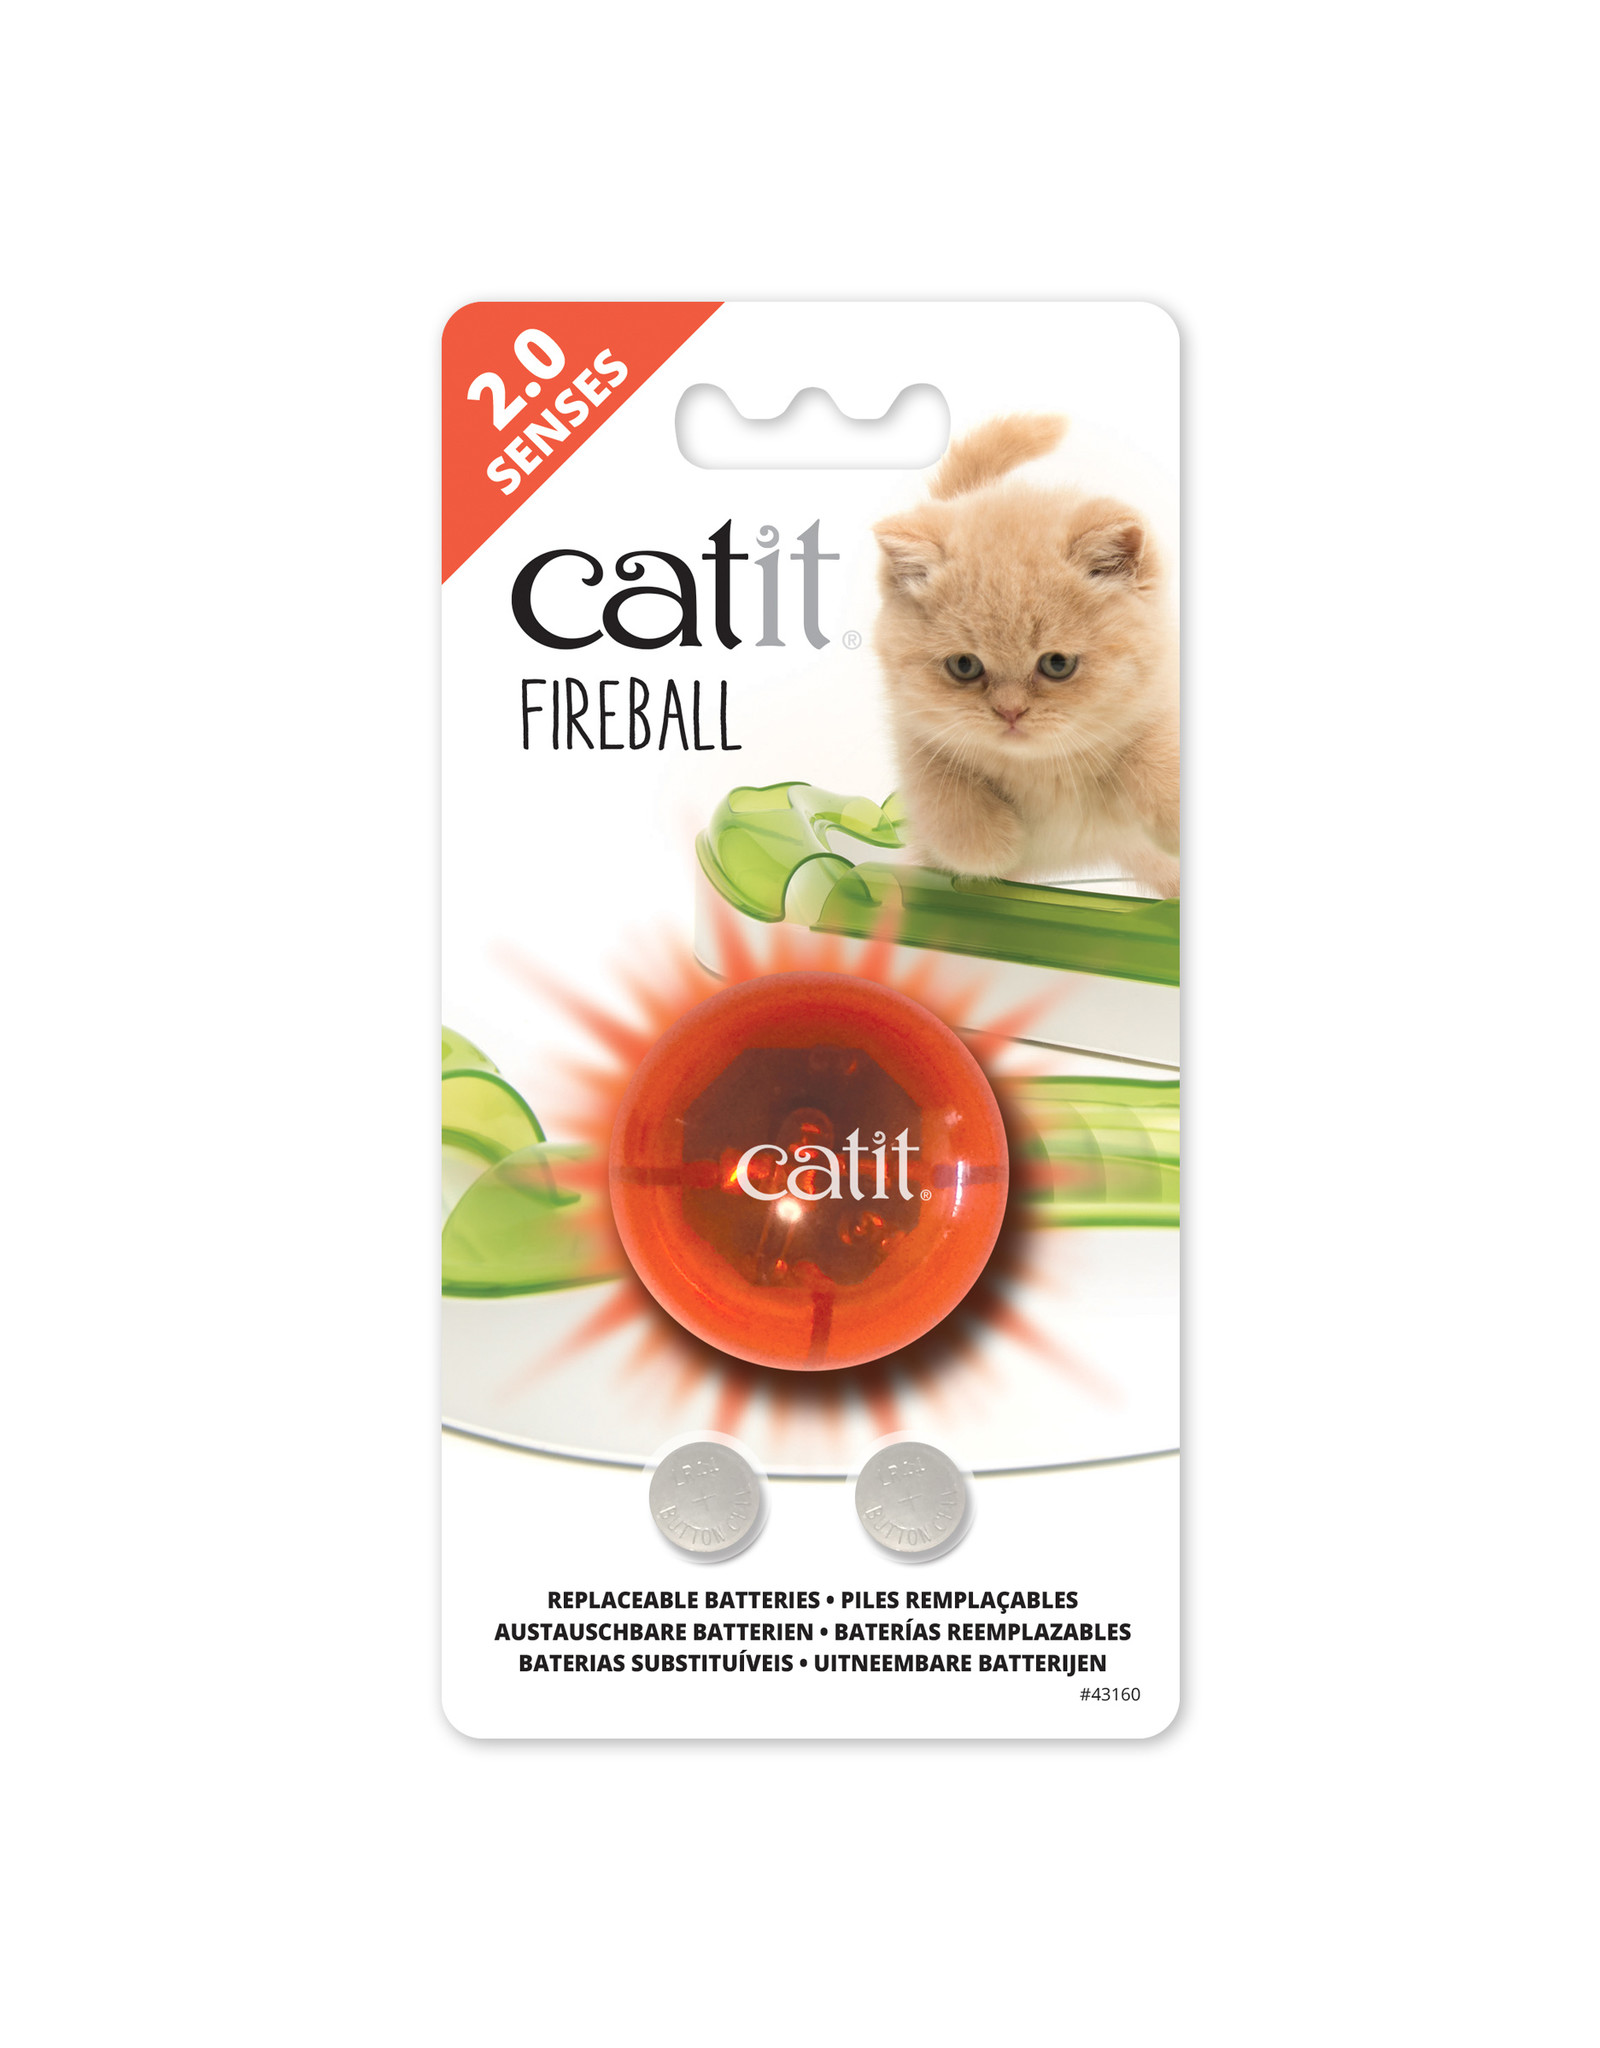 CT - Catit 2.0 Catit Senses 2.0 Fireball